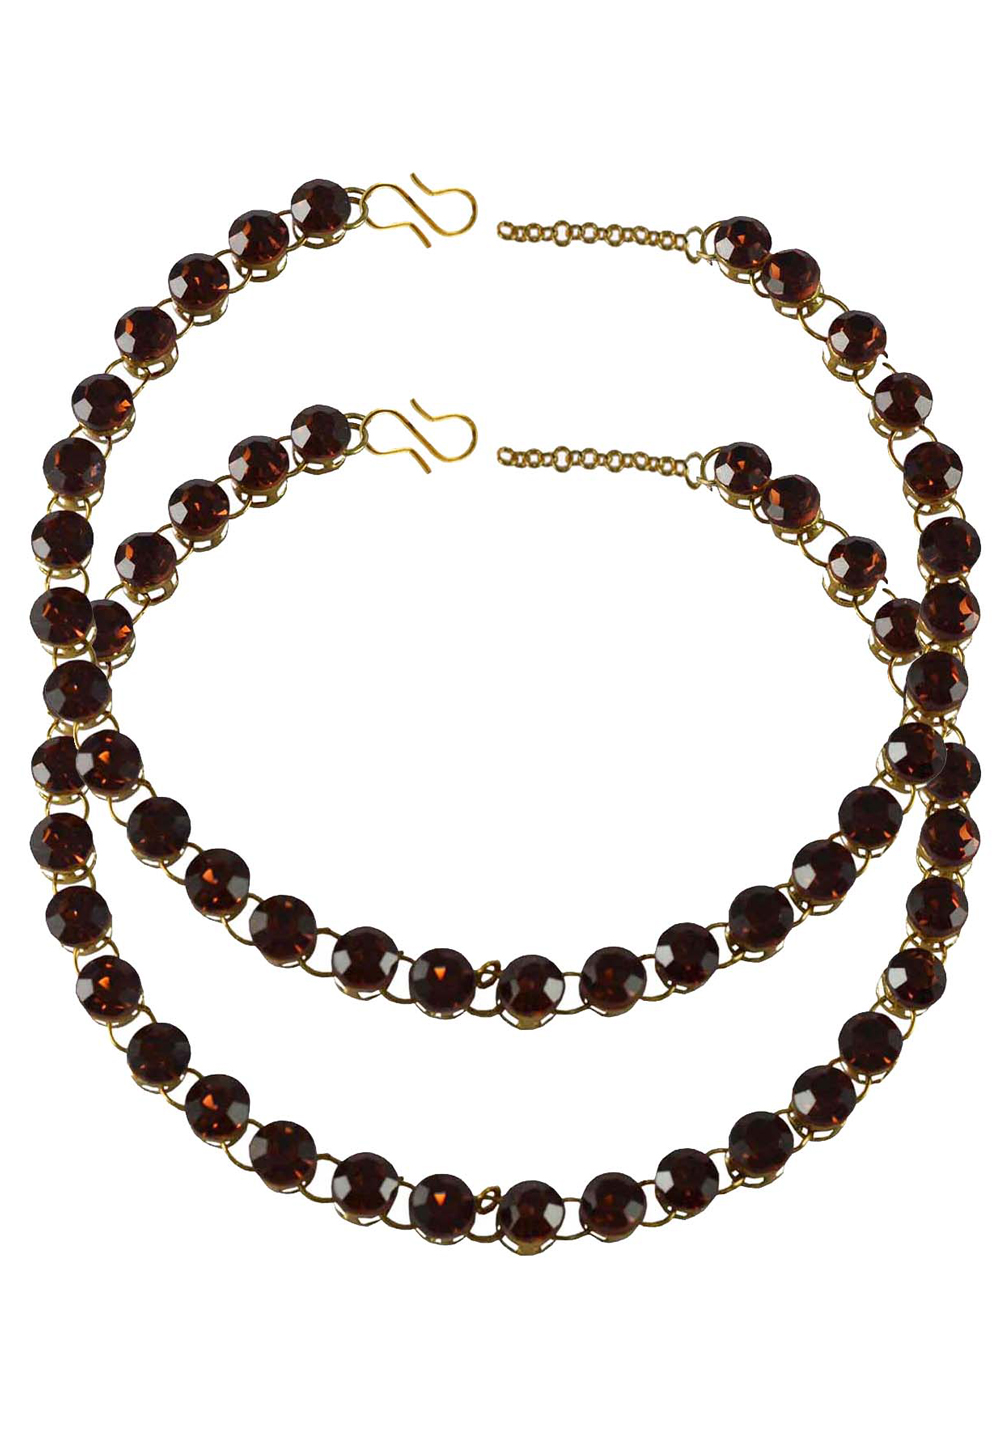 Maroon Brass Gold Plated Anklets 171263